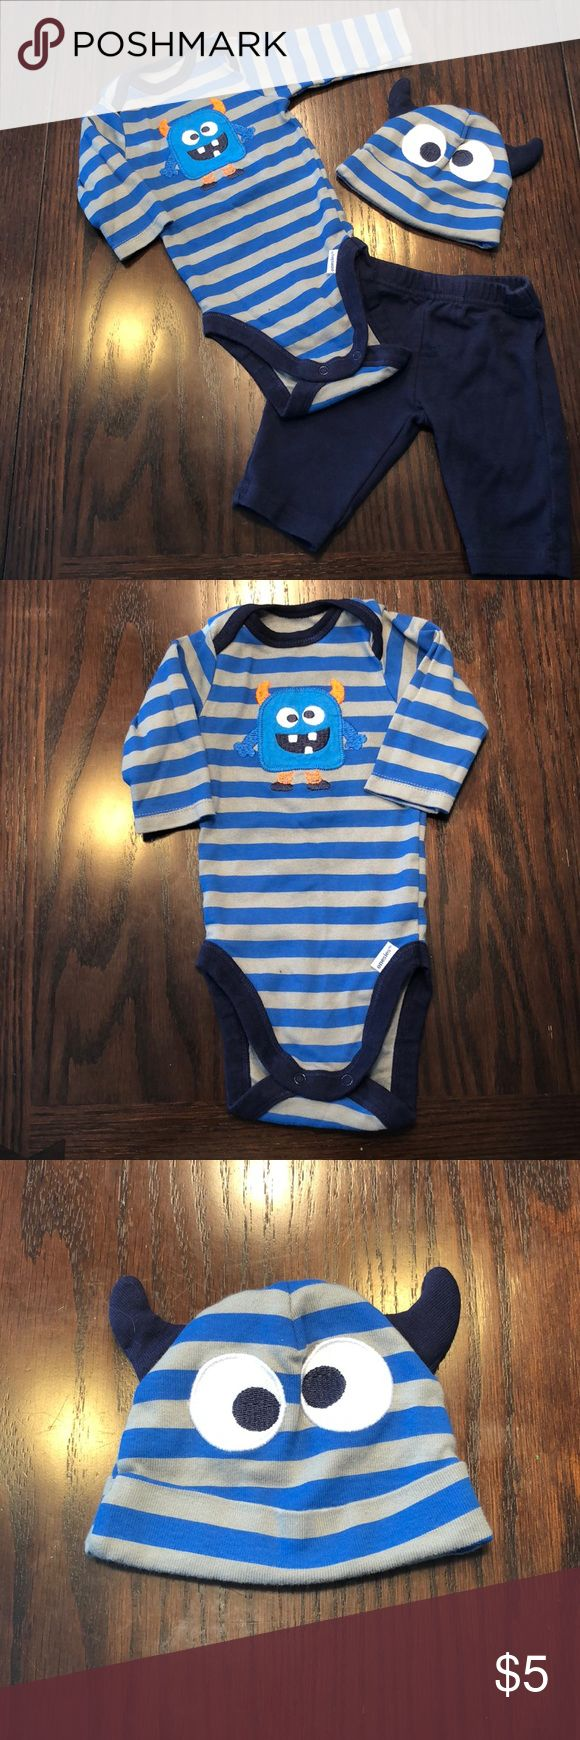 3 piece monster outfit Only worn once. Great condition!! All baby clothes washed in Dreft laundry detergent. Matching Sets